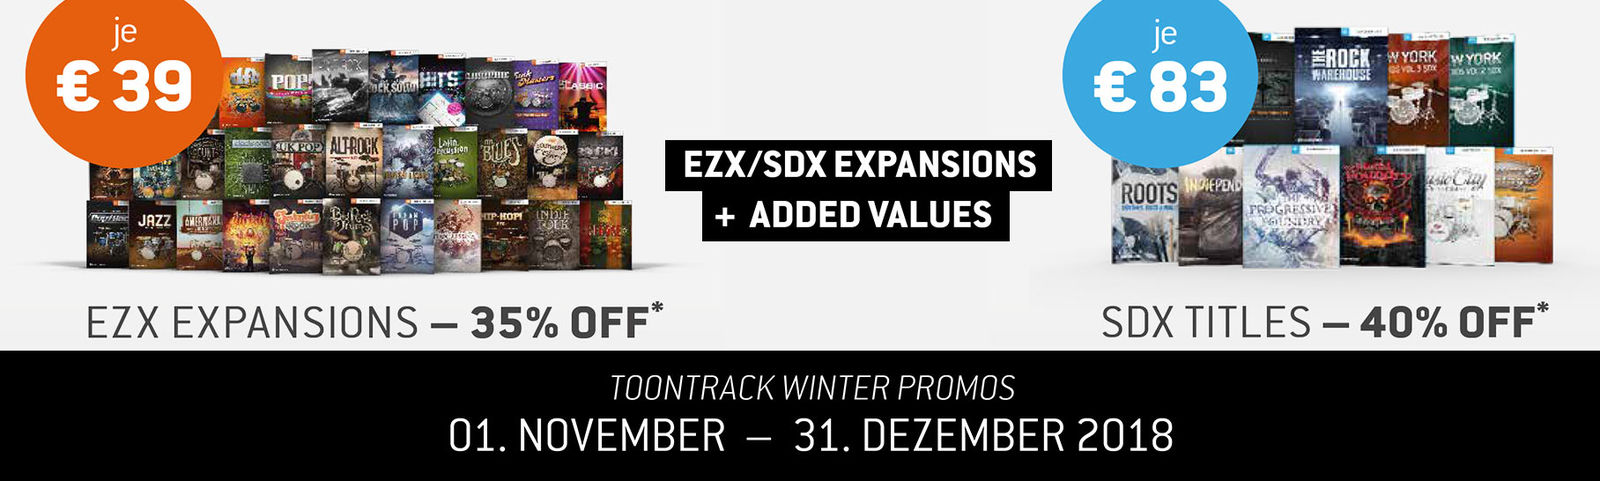 Toontrack Winter-Promo 2018